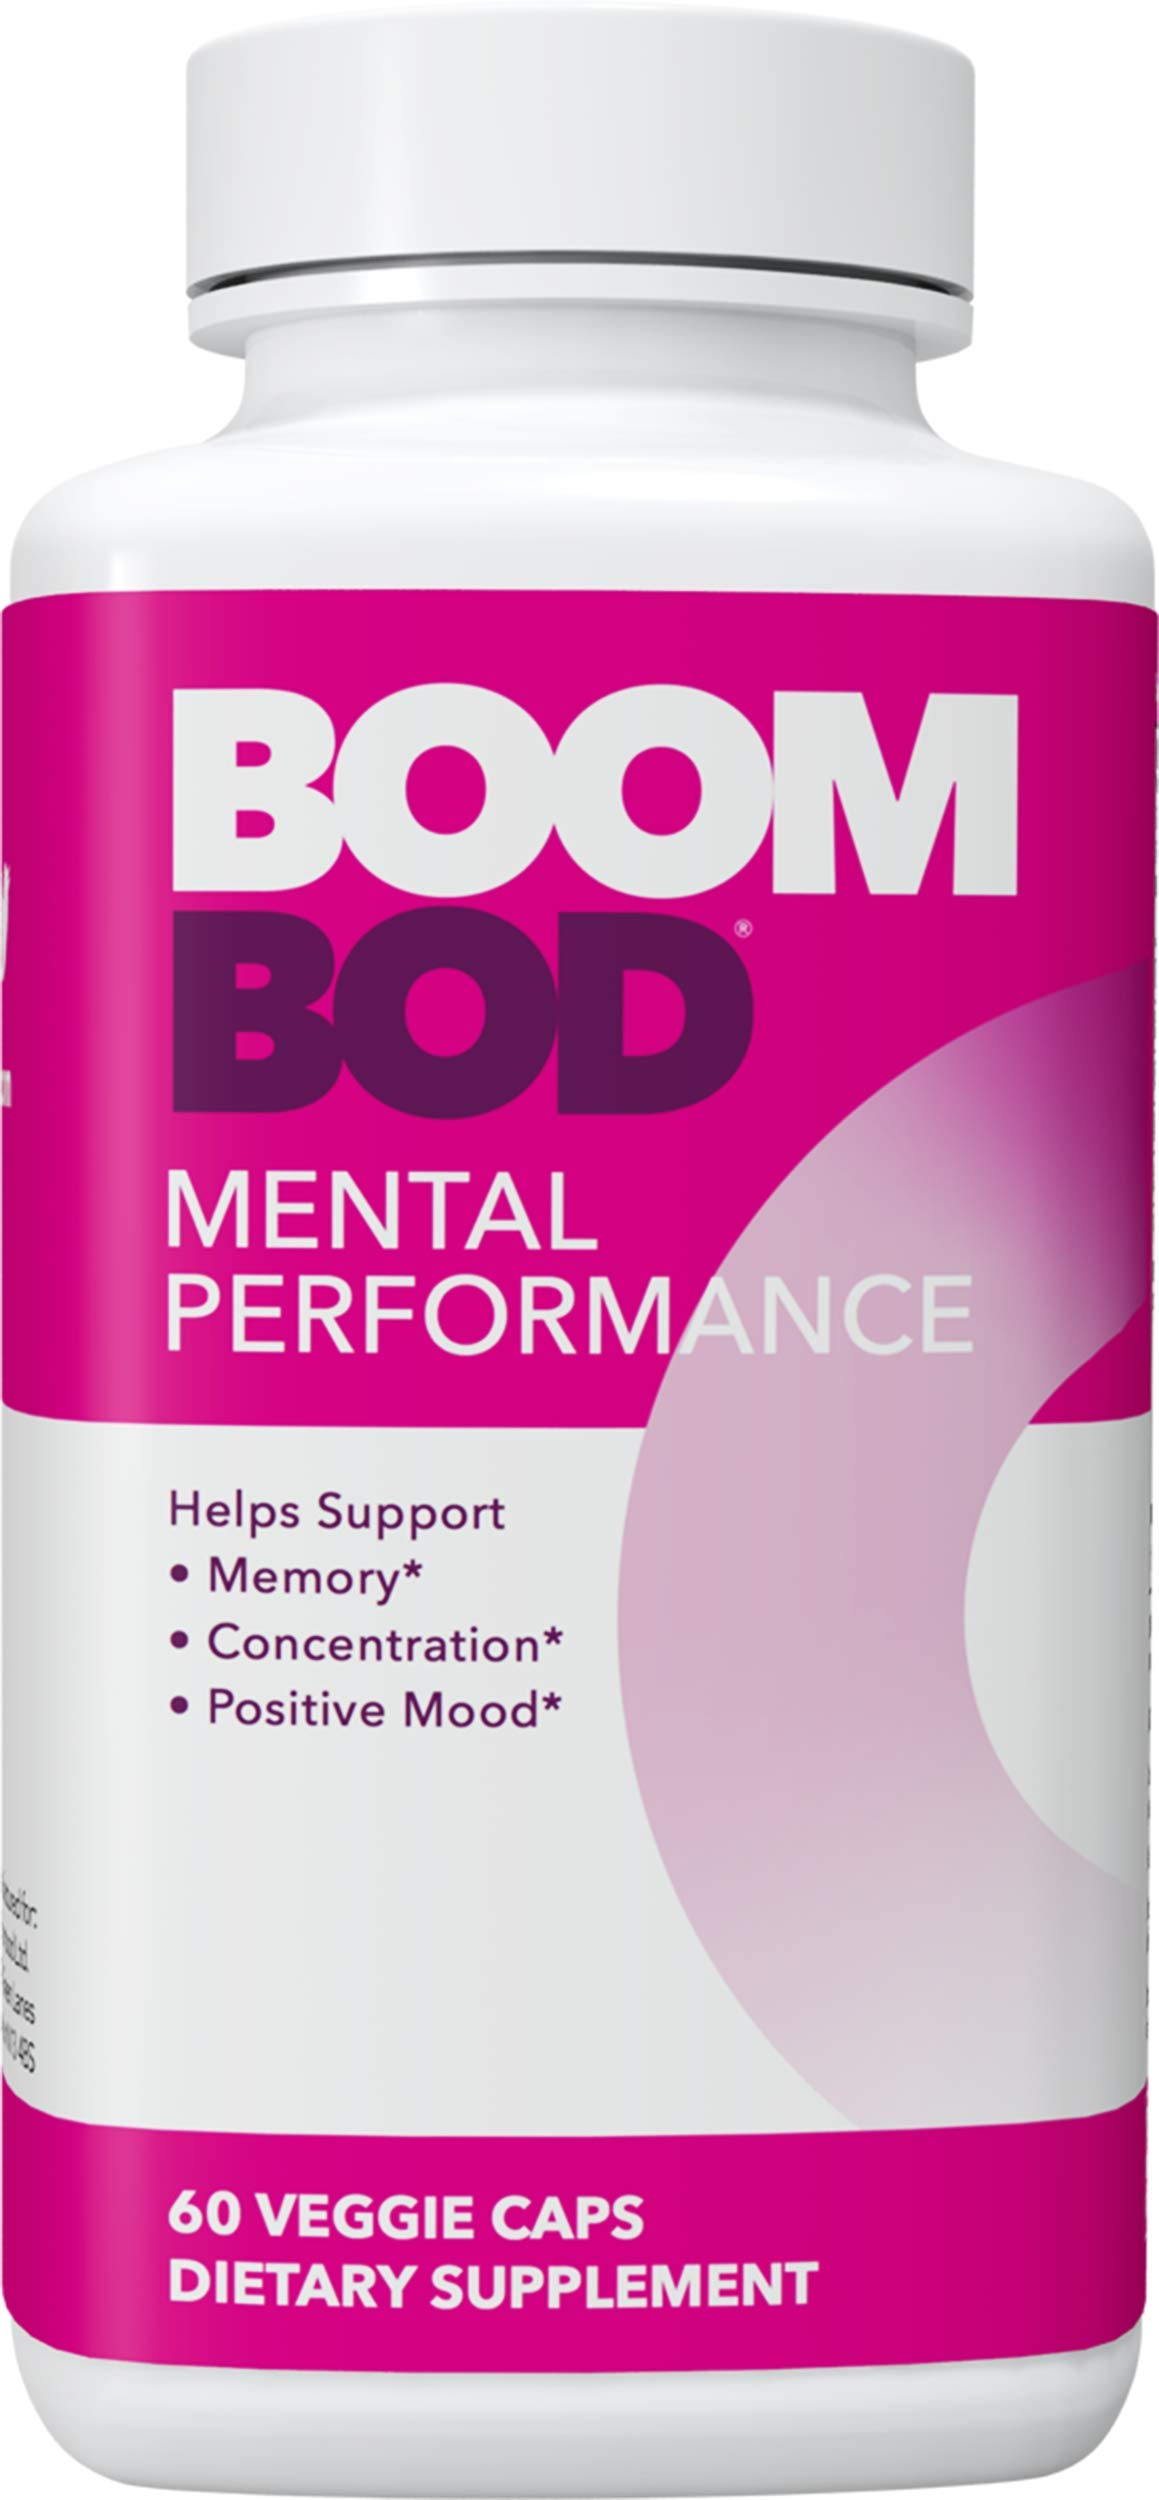 Boombod Mental Performance, Natural Nootropic Supplement - Focus, Concentration, Memory Blend, Positive Mood + Bacopa, L-Theanine, Ginkgo by Boombod